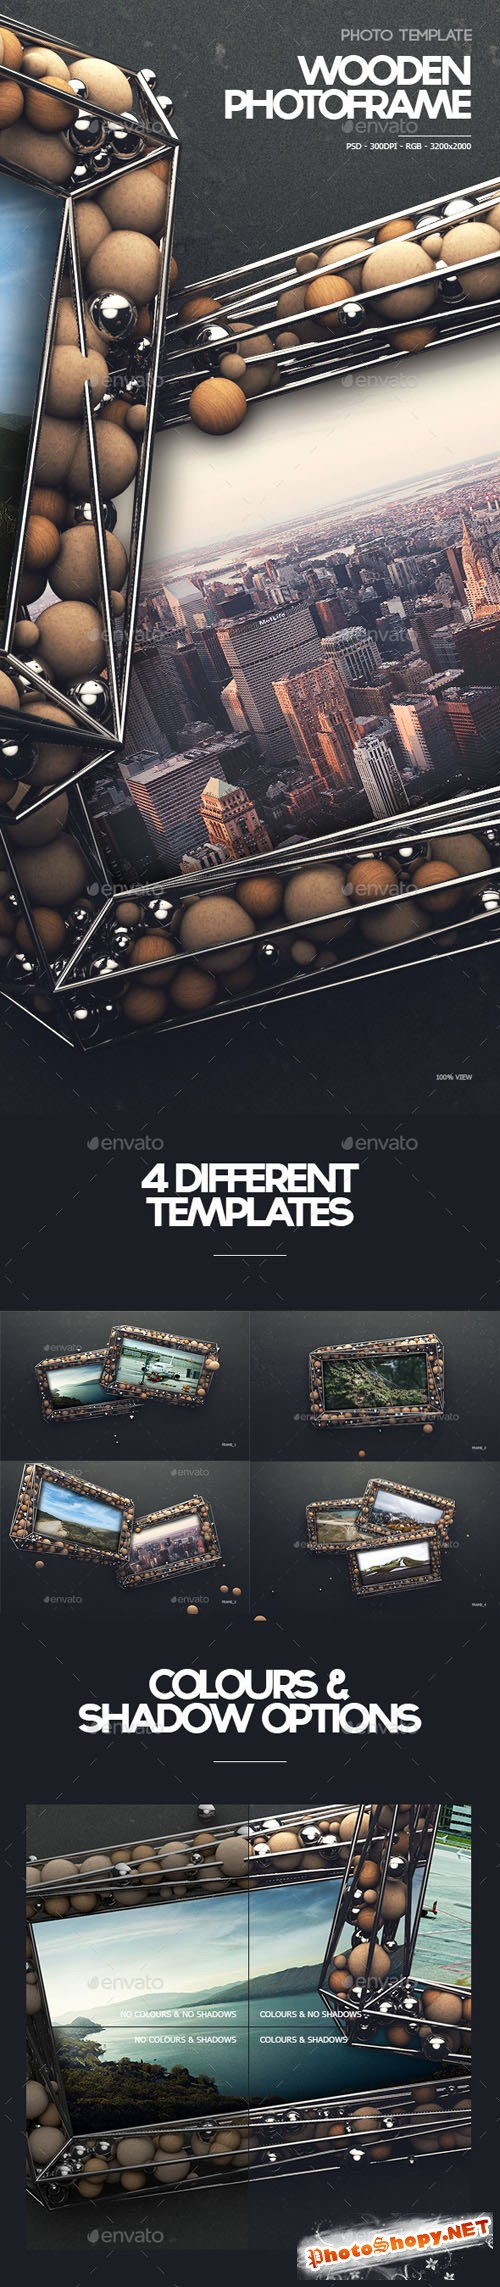 Wooden Photoframe Template V.1 - Graphicriver 10780981